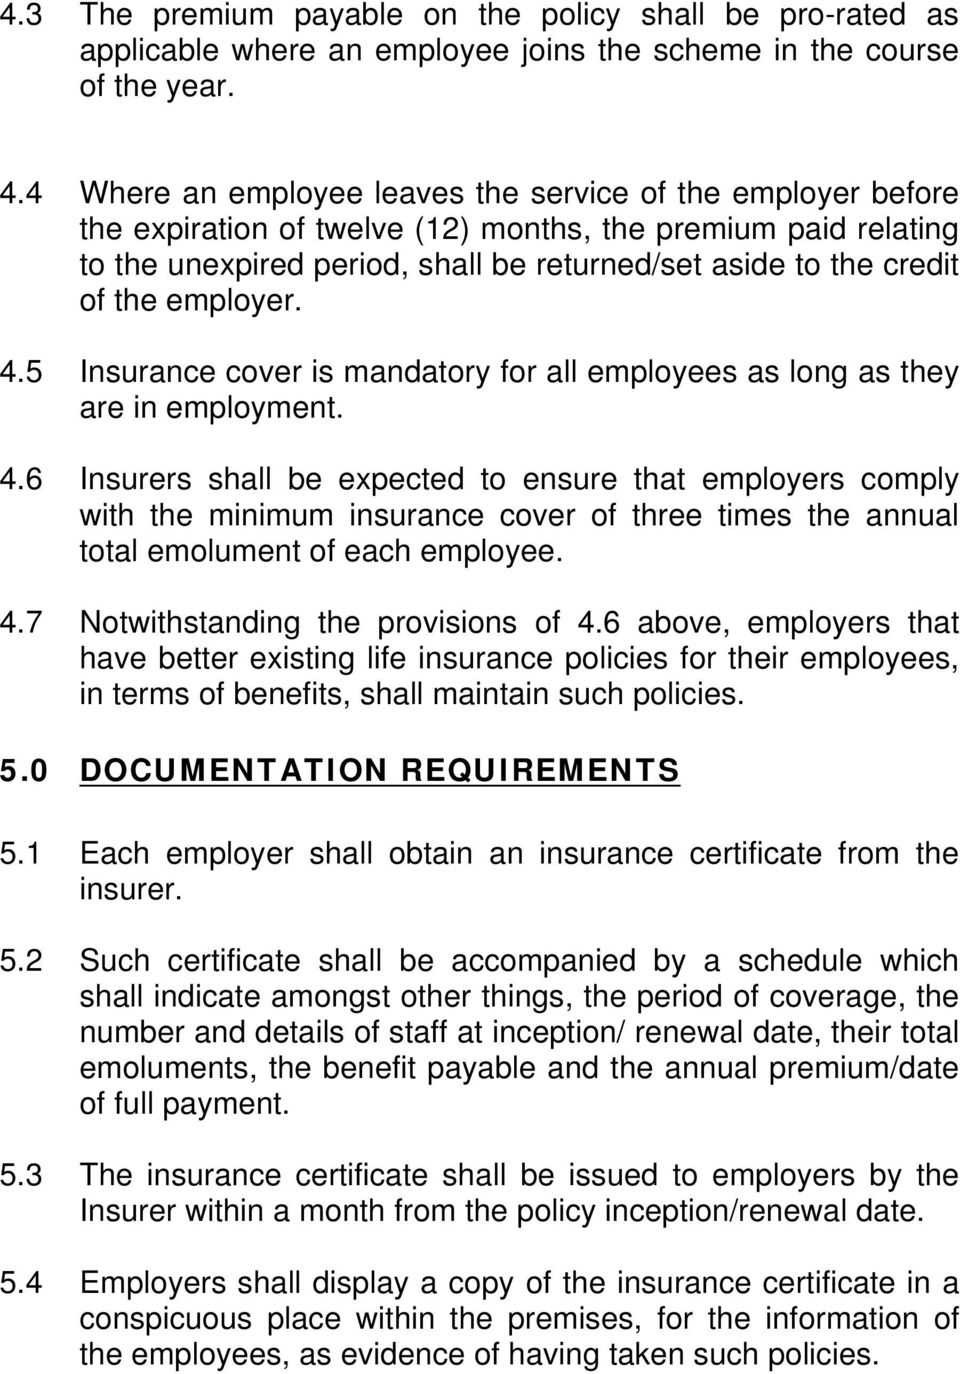 employer. 4.5 Insurance cover is mandatory for all employees as long as they are in employment. 4.6 Insurers shall be expected to ensure that employers comply with the minimum insurance cover of three times the annual total emolument of each employee.